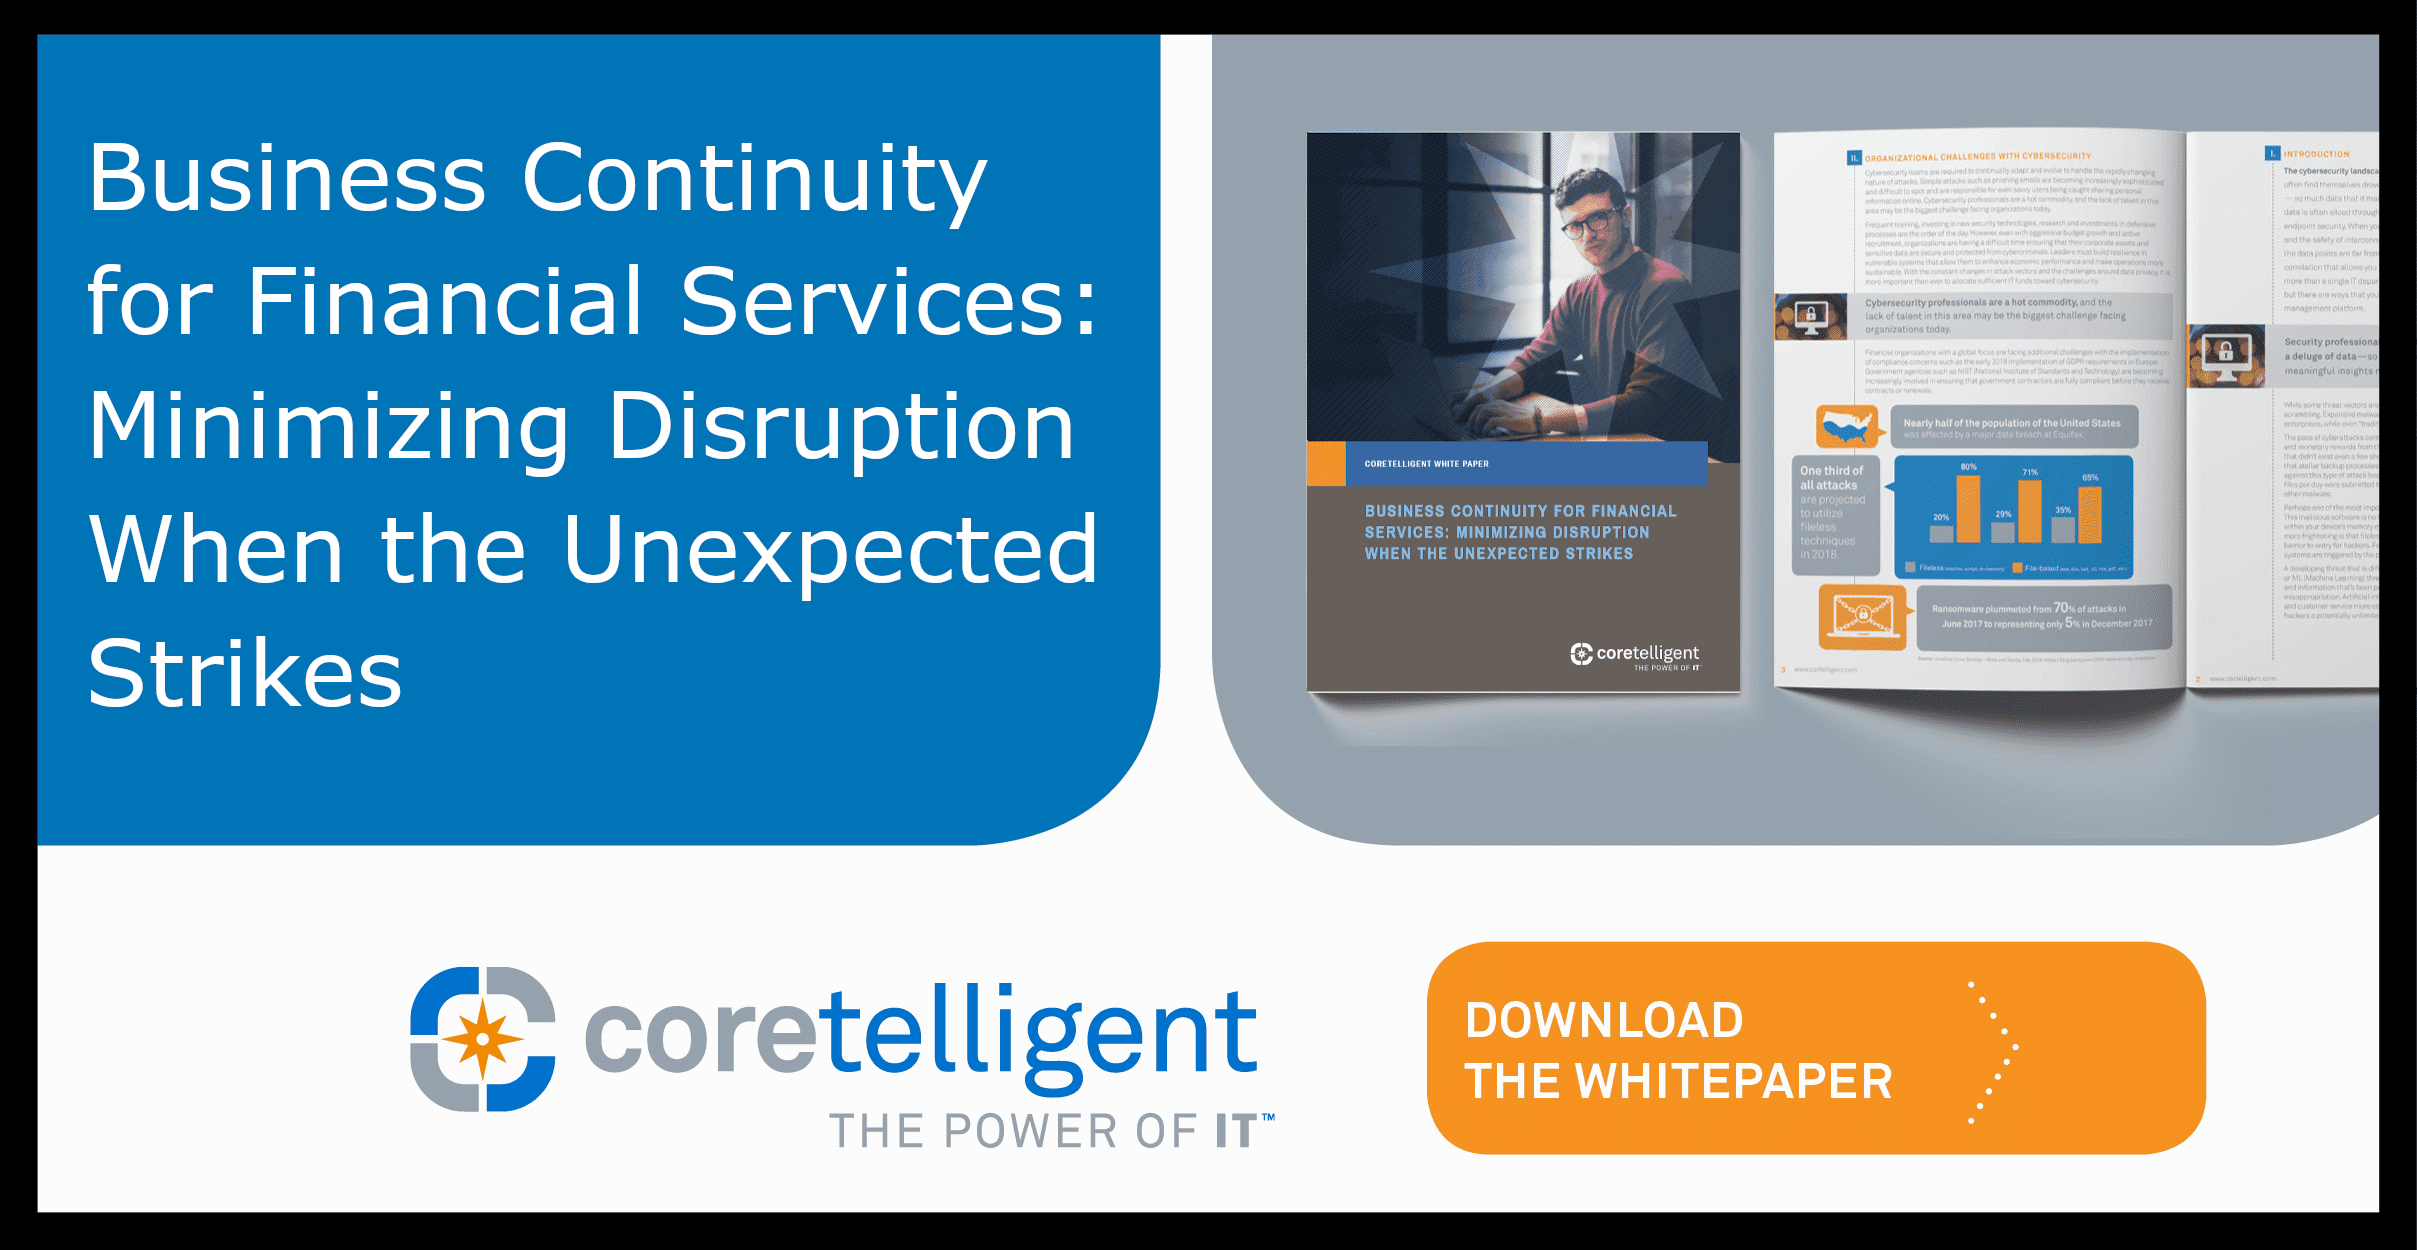 Financial Services Business Continuity Whitepaper